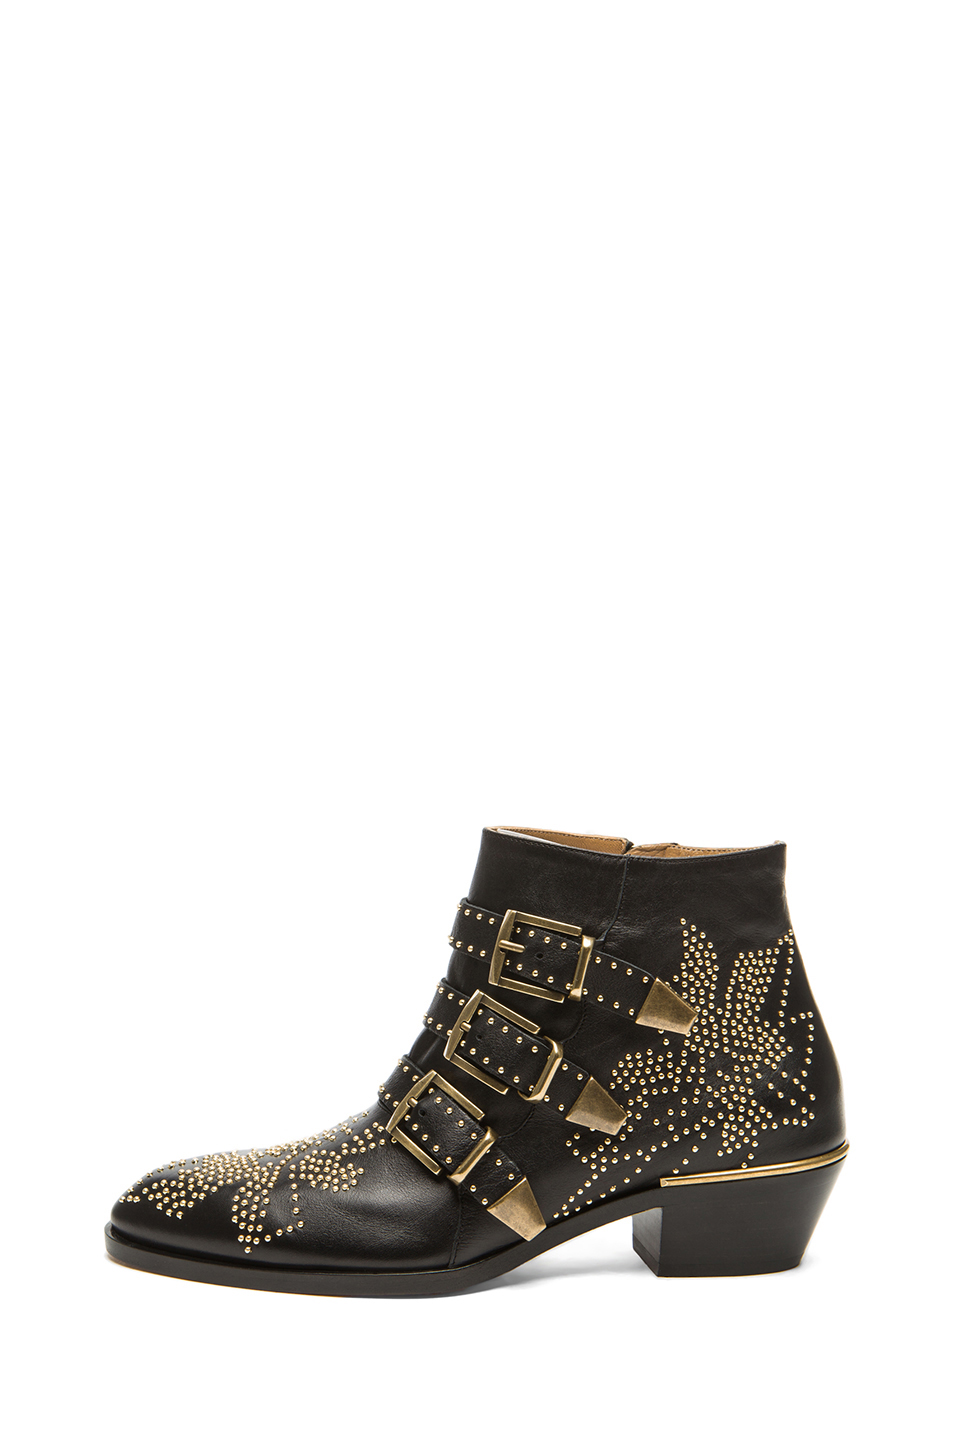 Susanna leather studded booties in black